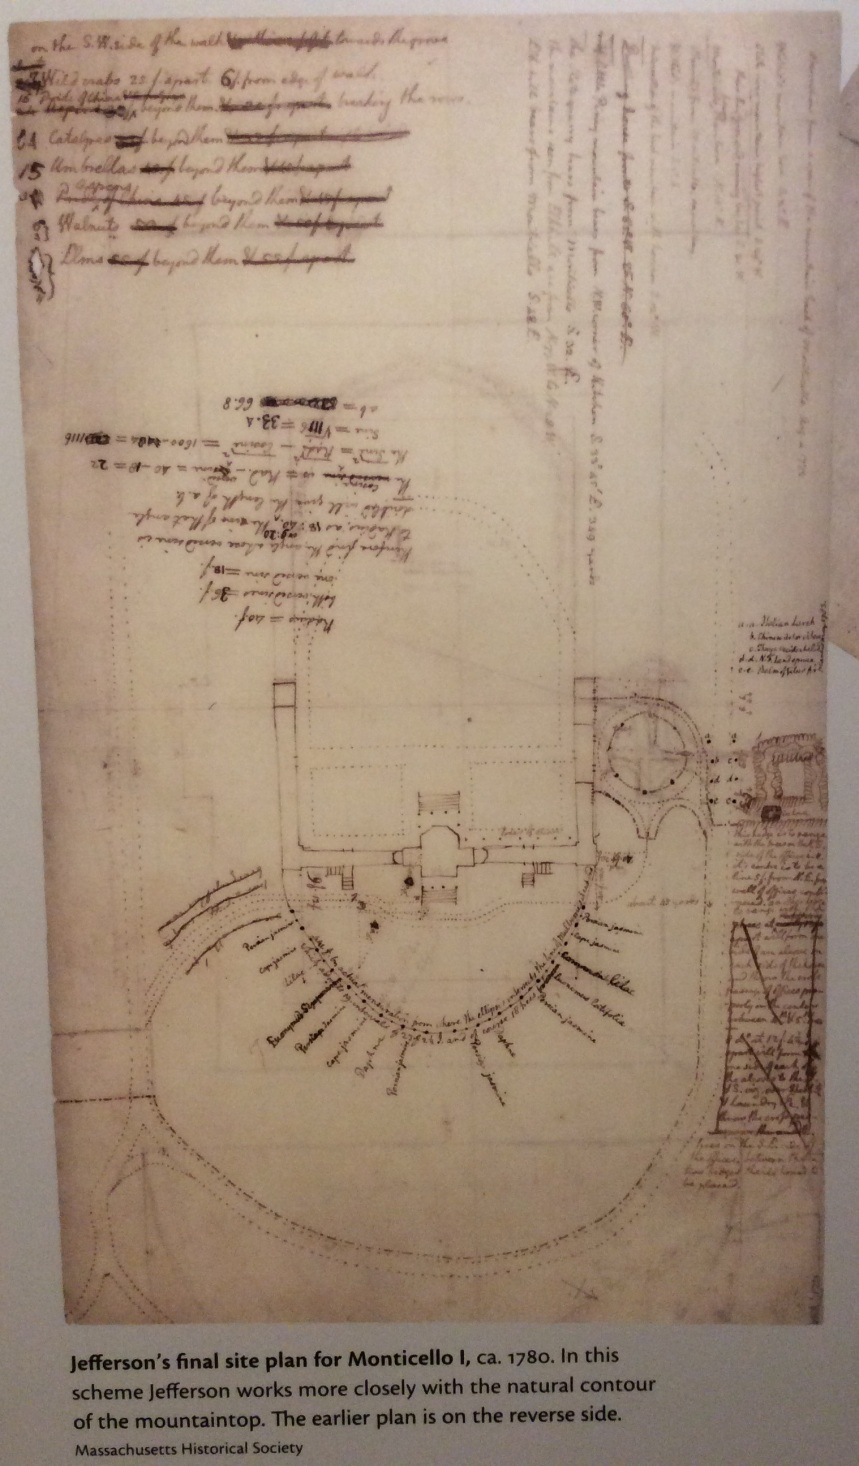 Thomas Jefferson's final site plan for Monticello on display at the visitor center museum, 2015 by Amy Cools